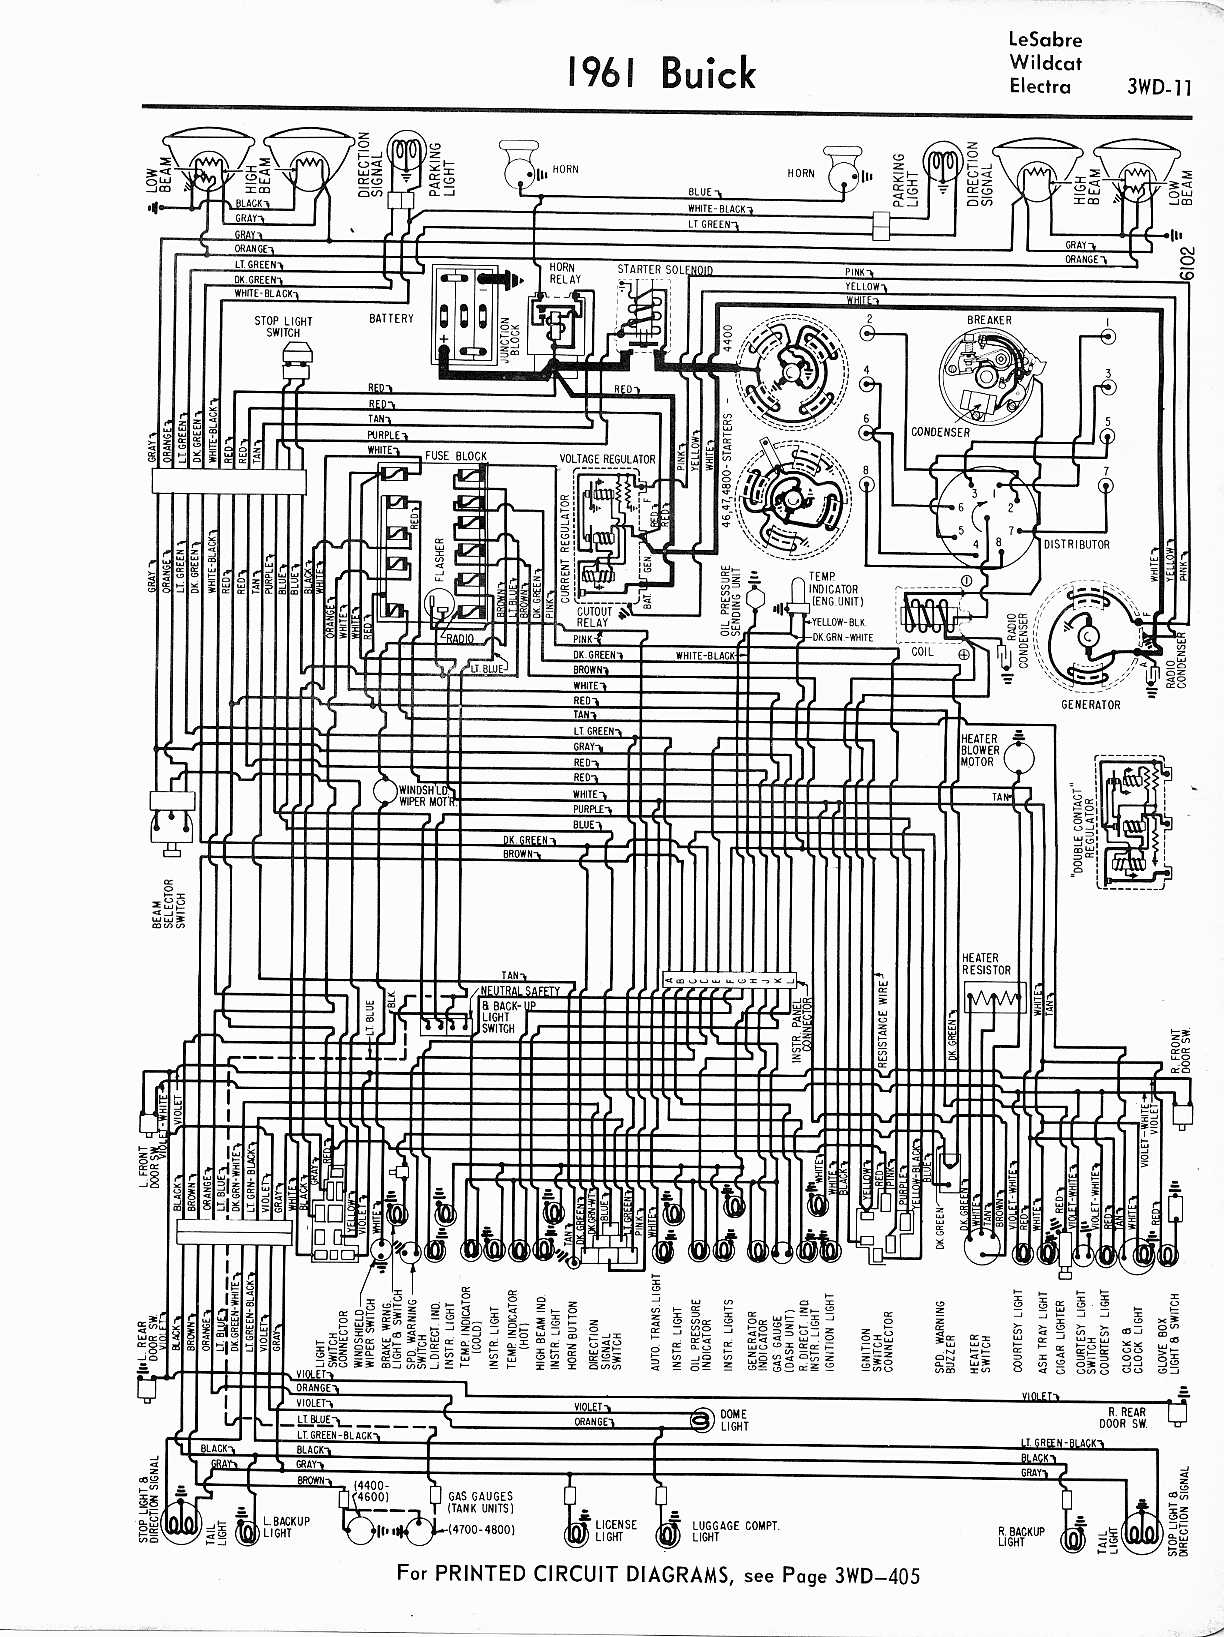 MWireBuic65_3WD 011 buick lesabre fuse box diagram wiring diagram simonand 1999 buick lesabre wiring diagram at mifinder.co